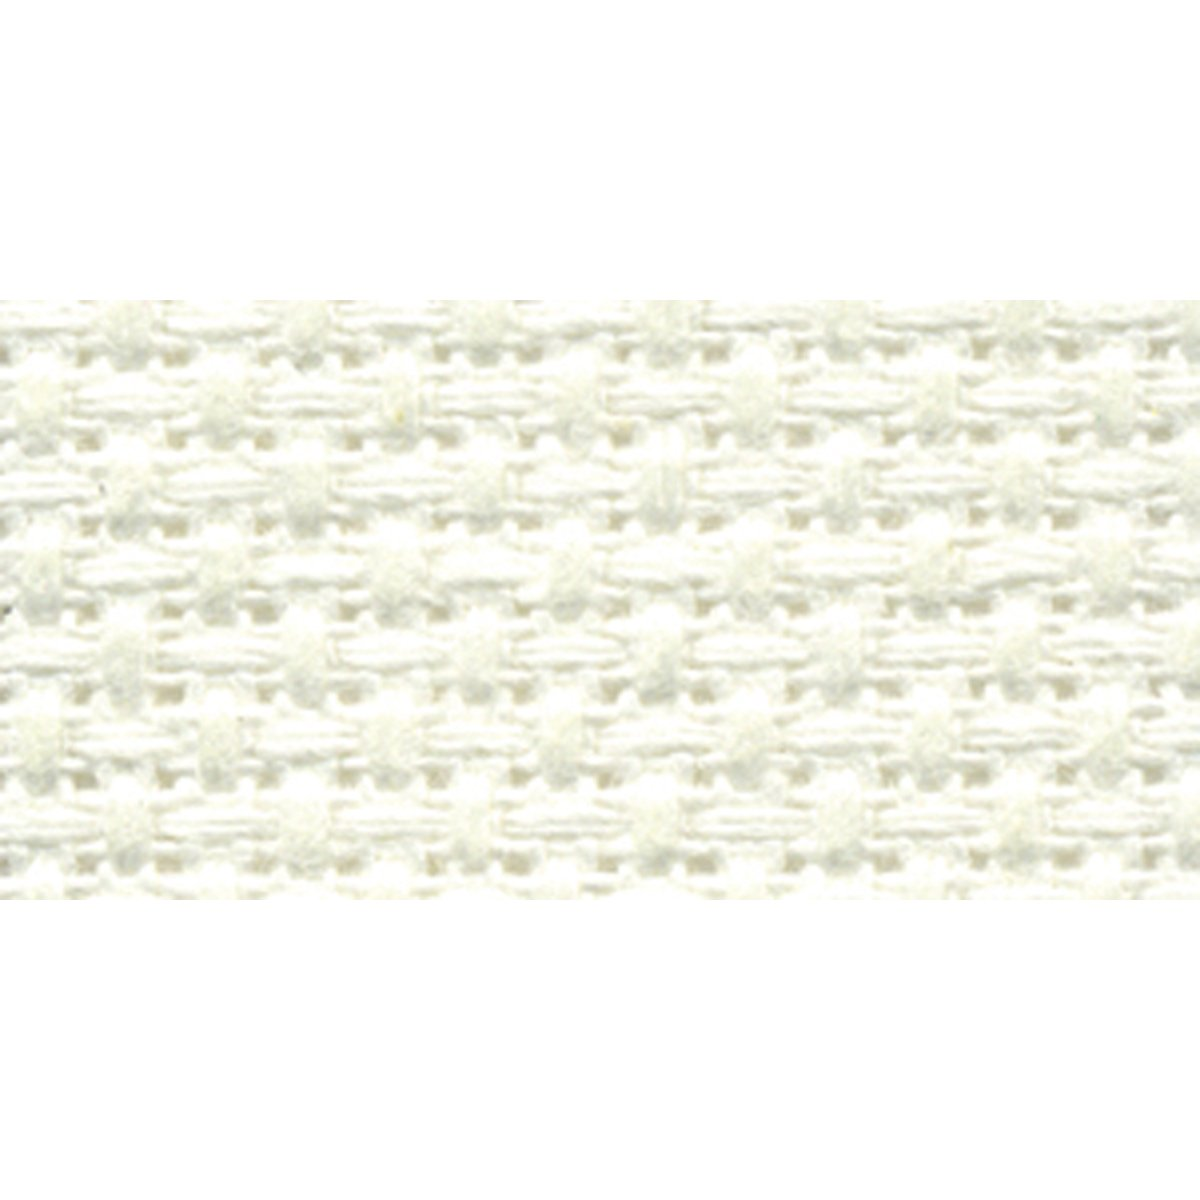 DMC CS1432-0322 Classic Reserve Aida, 30-Inch by 10-Yard, Antique White, 14-Count Notions - In Network